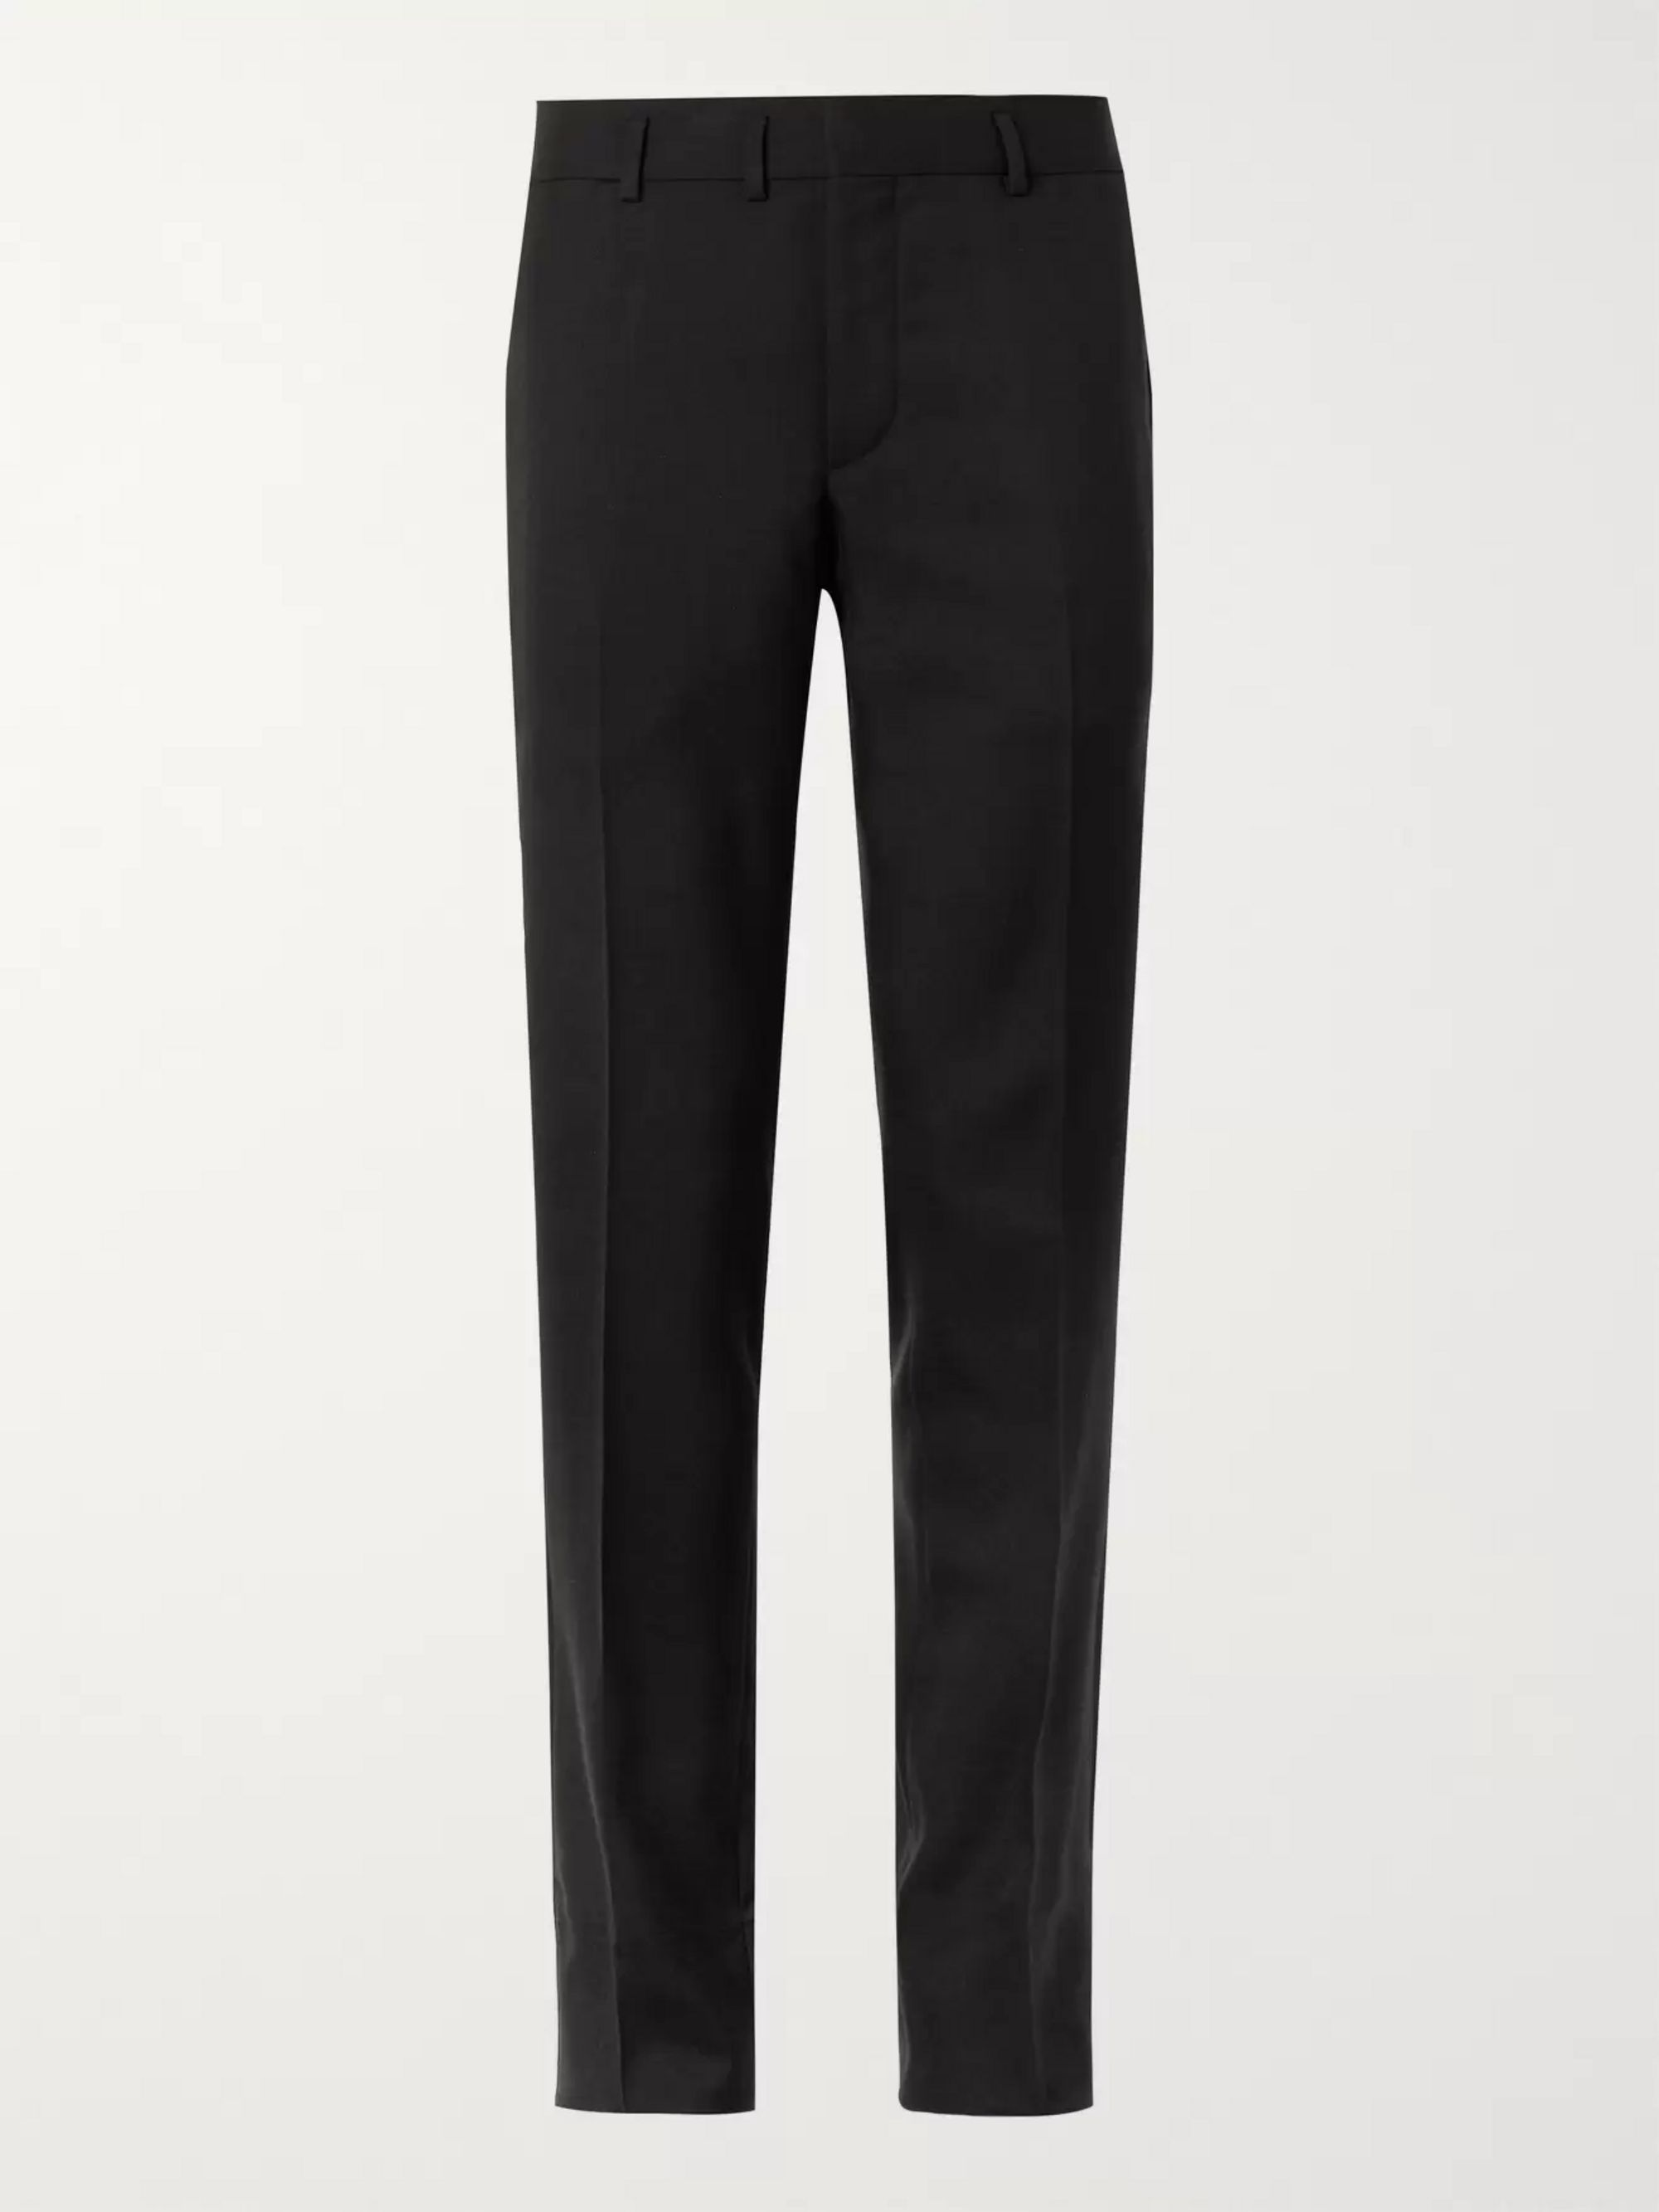 SAINT LAURENT Slim-Fit Virgin Wool-Gabardine Trousers